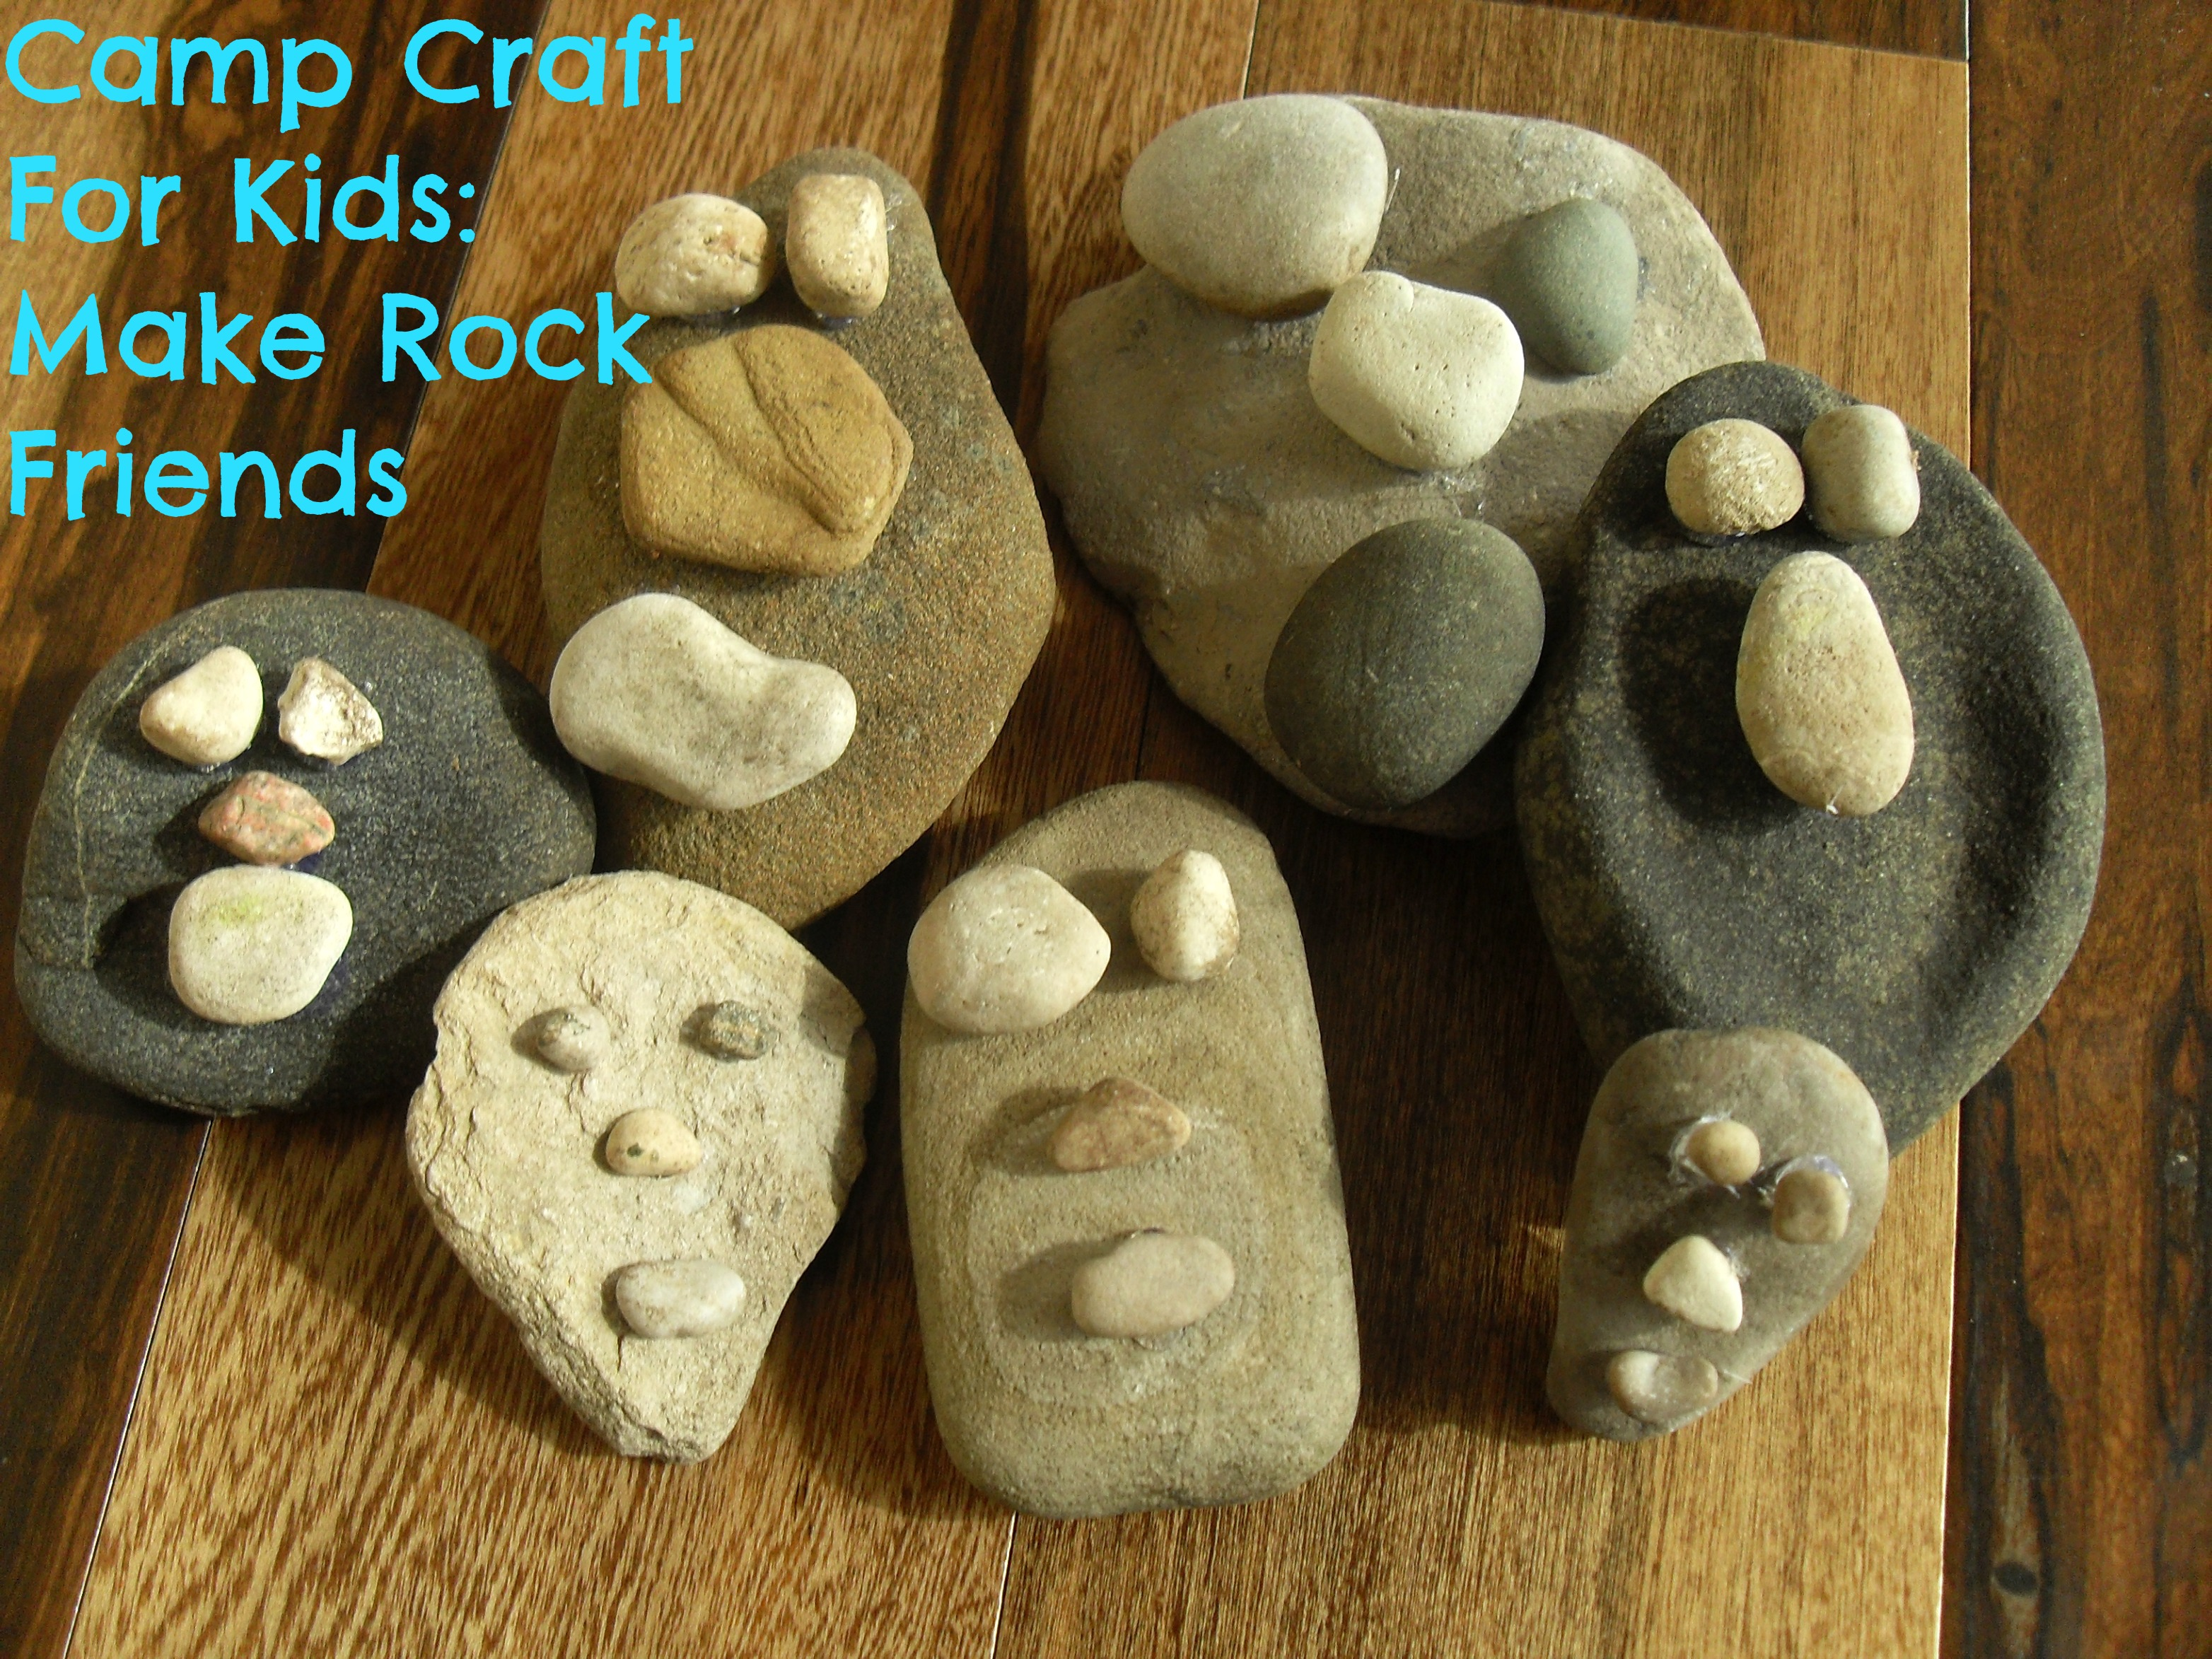 Camp craft for kids make rock friends my kids guide for Crafts made from rocks